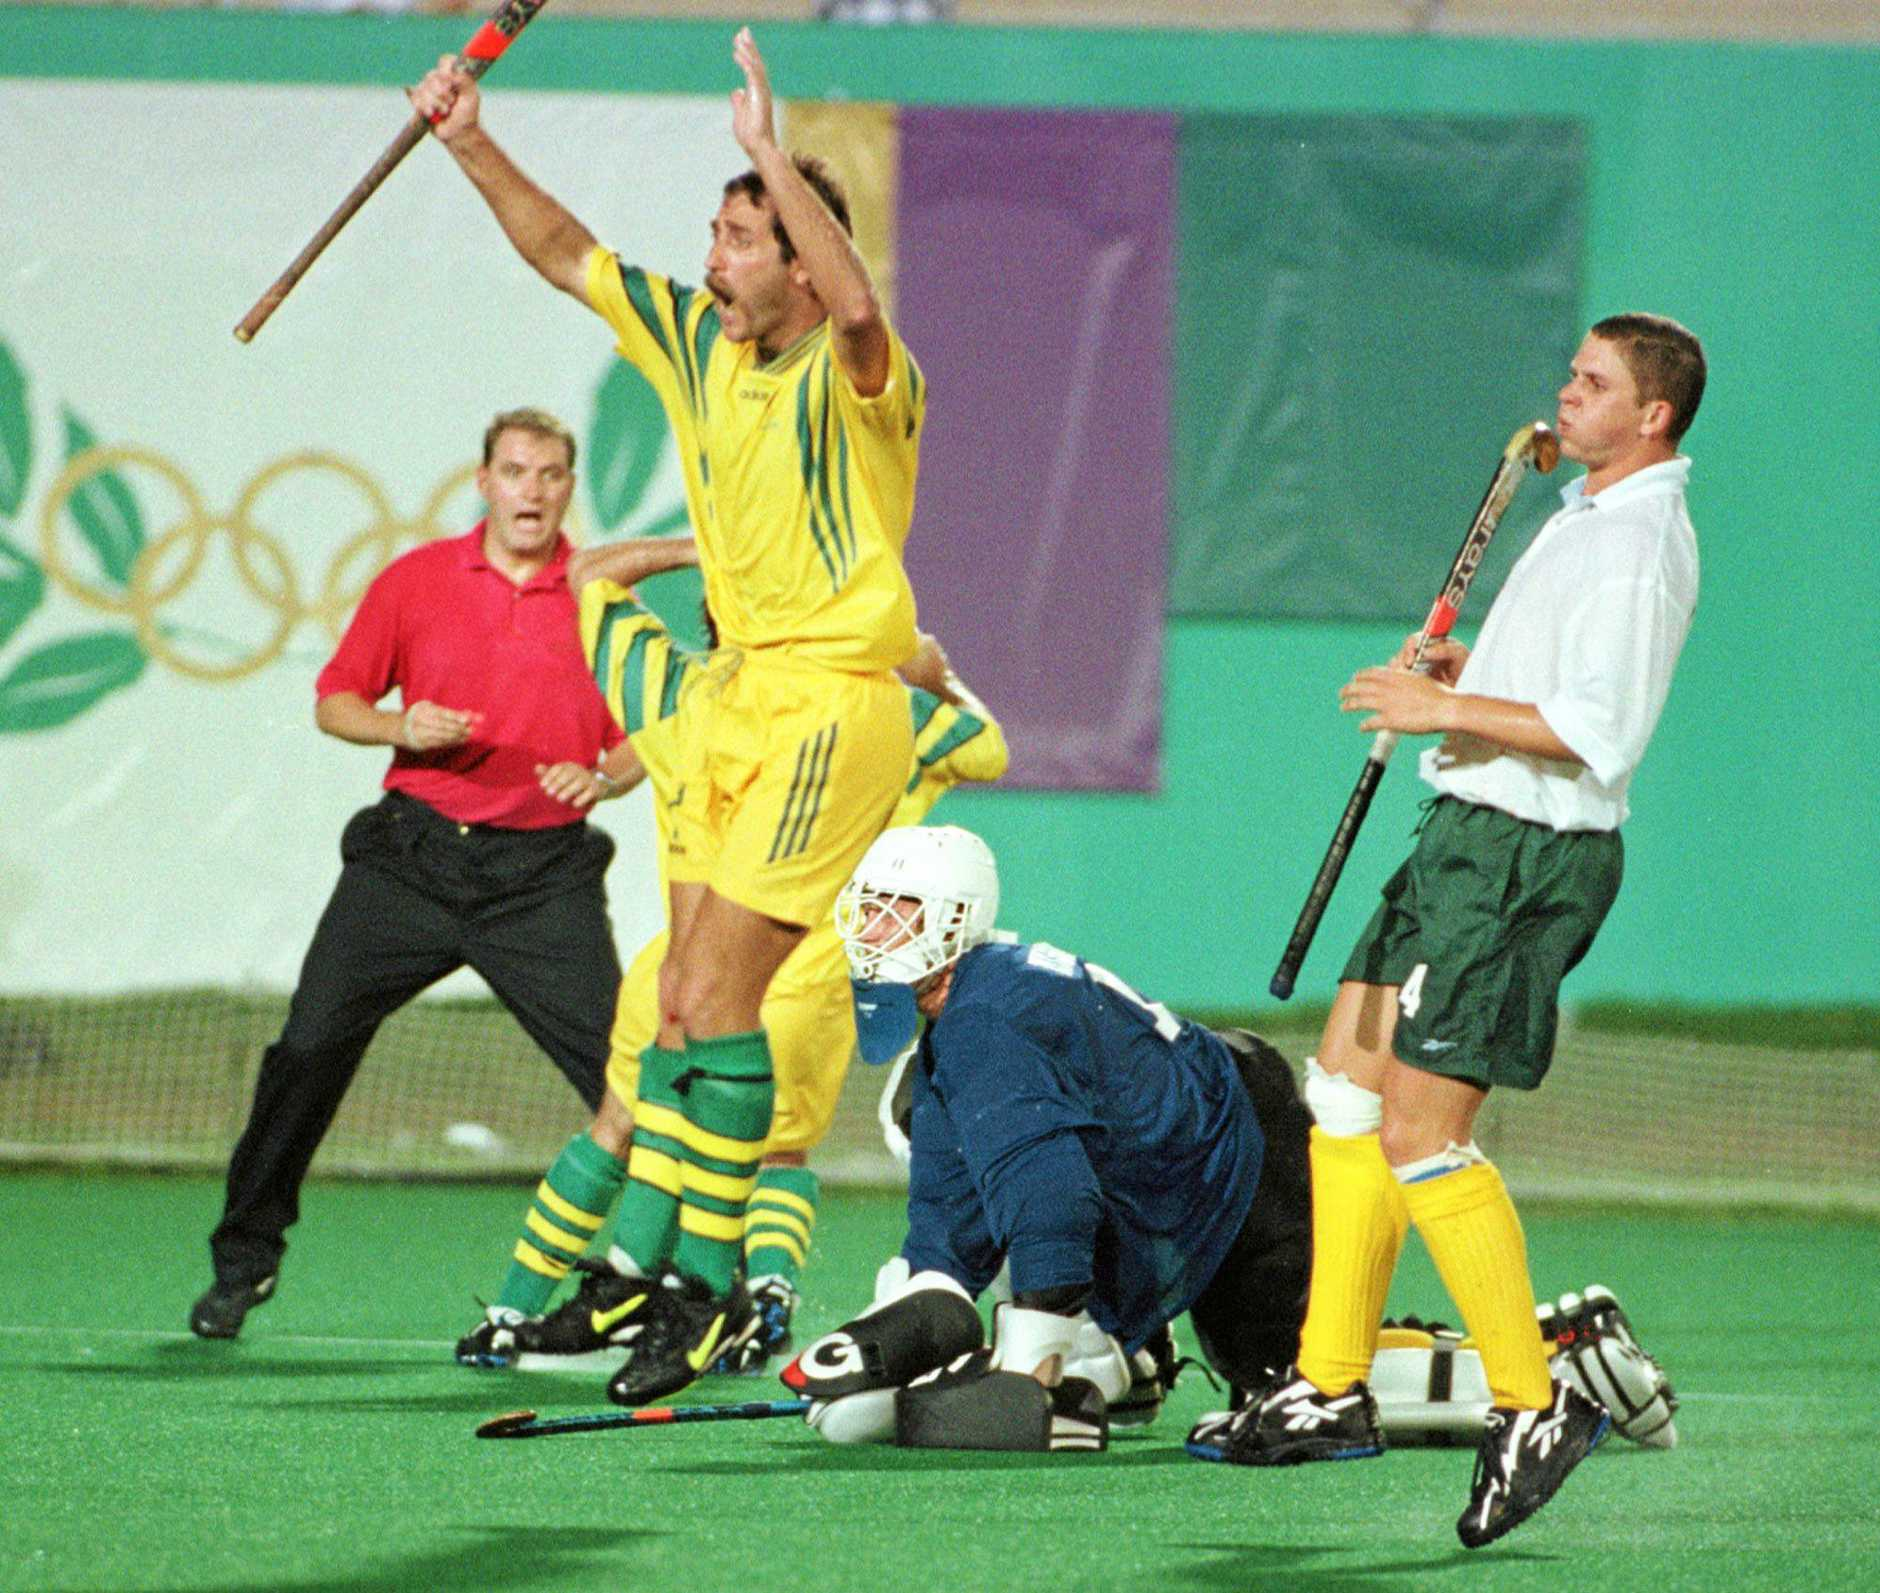 OLYS130 ATLANTA JULY 21 AAP (HOCKEY) - Australian captain Mark Hager leaps into the air after narrowly missing a shot at goal during the match played against South Africa today. AAP PHOTOS/RUSSELL MCPHEDRAN (AAP POOL)